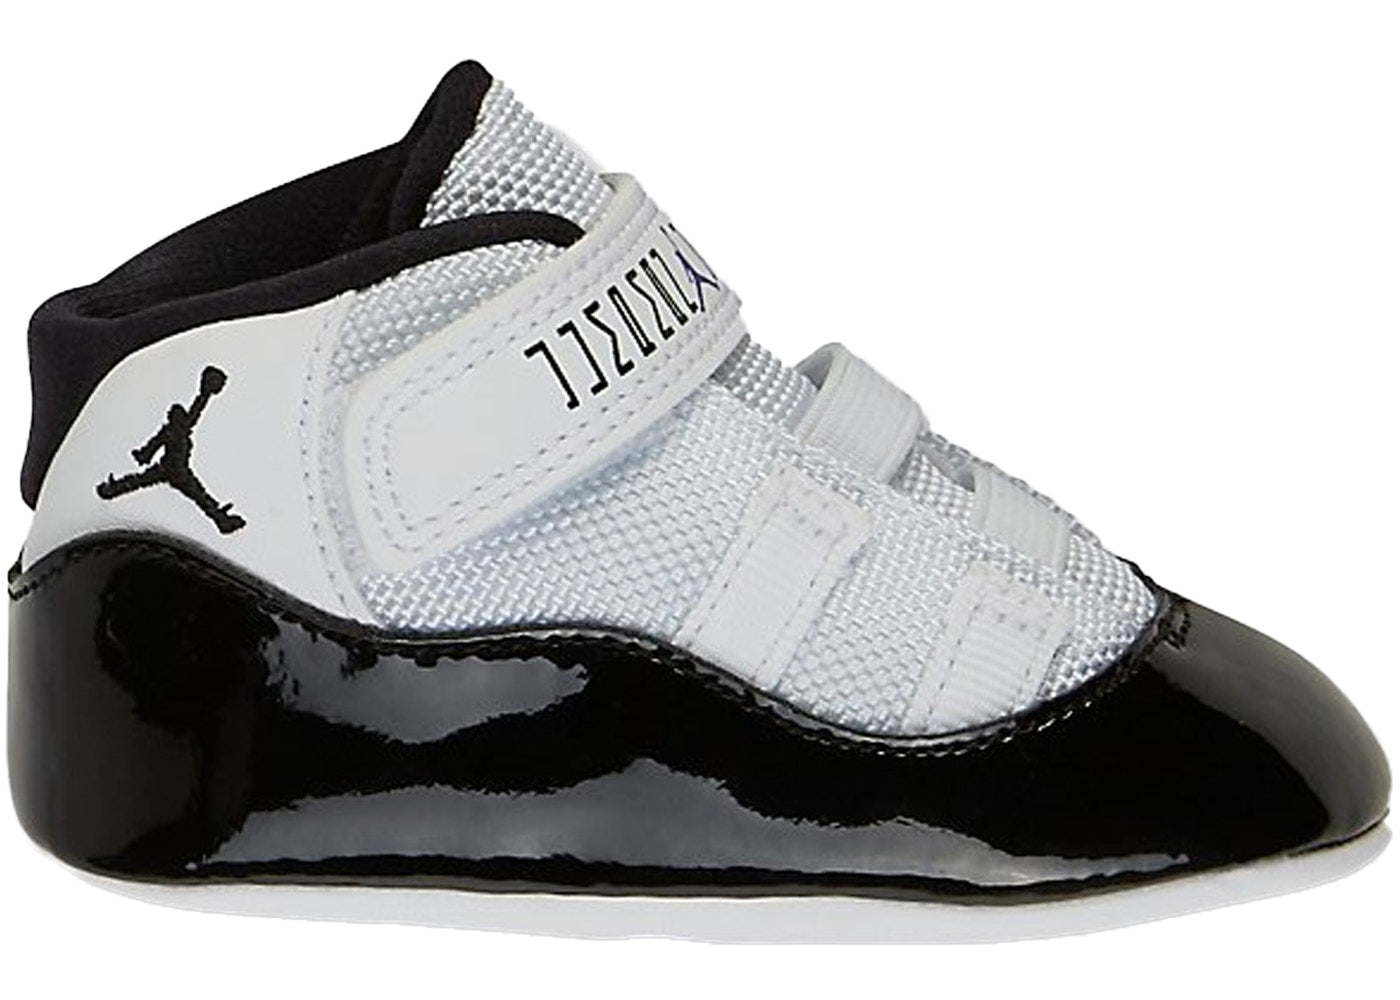 4f8fbecb712 Details about Kids Air Jordan 11 XI Retro Crib CB Concord White Black  378049-100